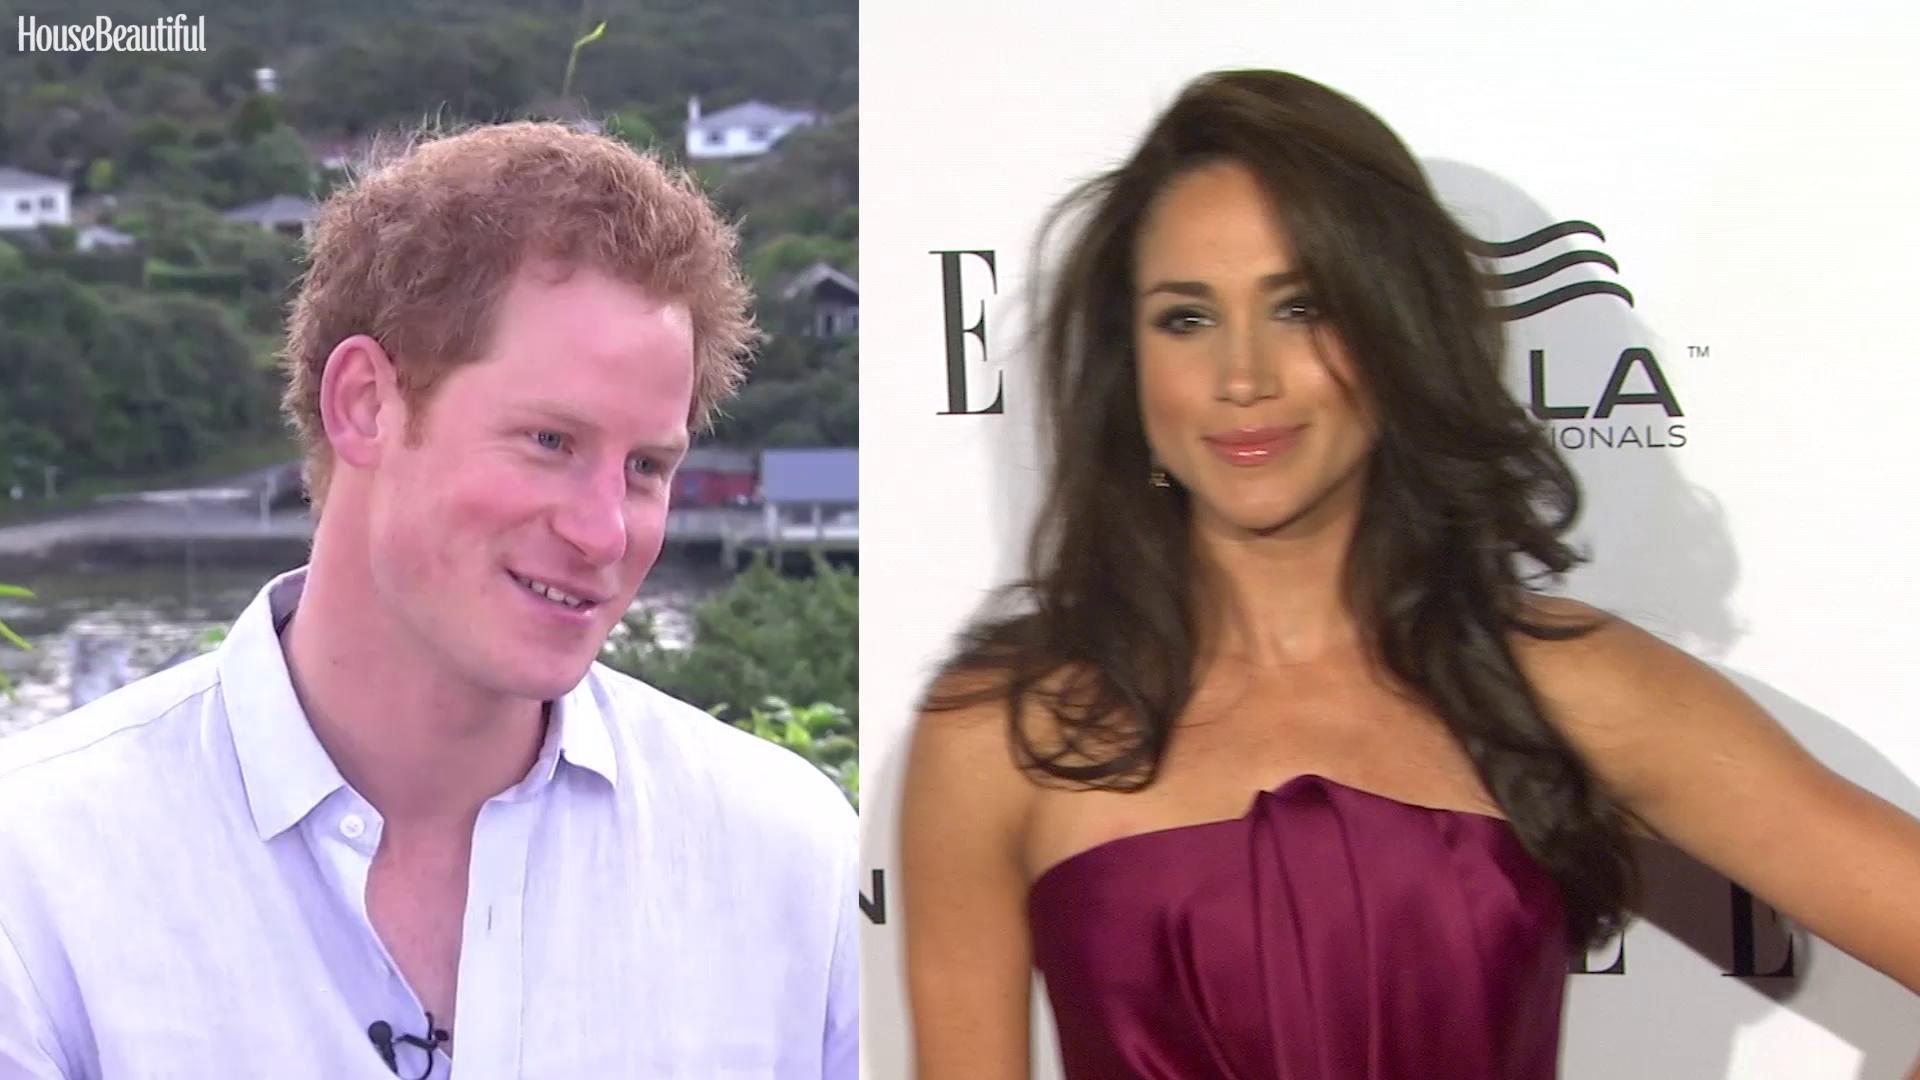 5 Things You Should Know About Prince Harry's New Girlfriend, Meghan Markle https://t.co/JMadx37Lt2